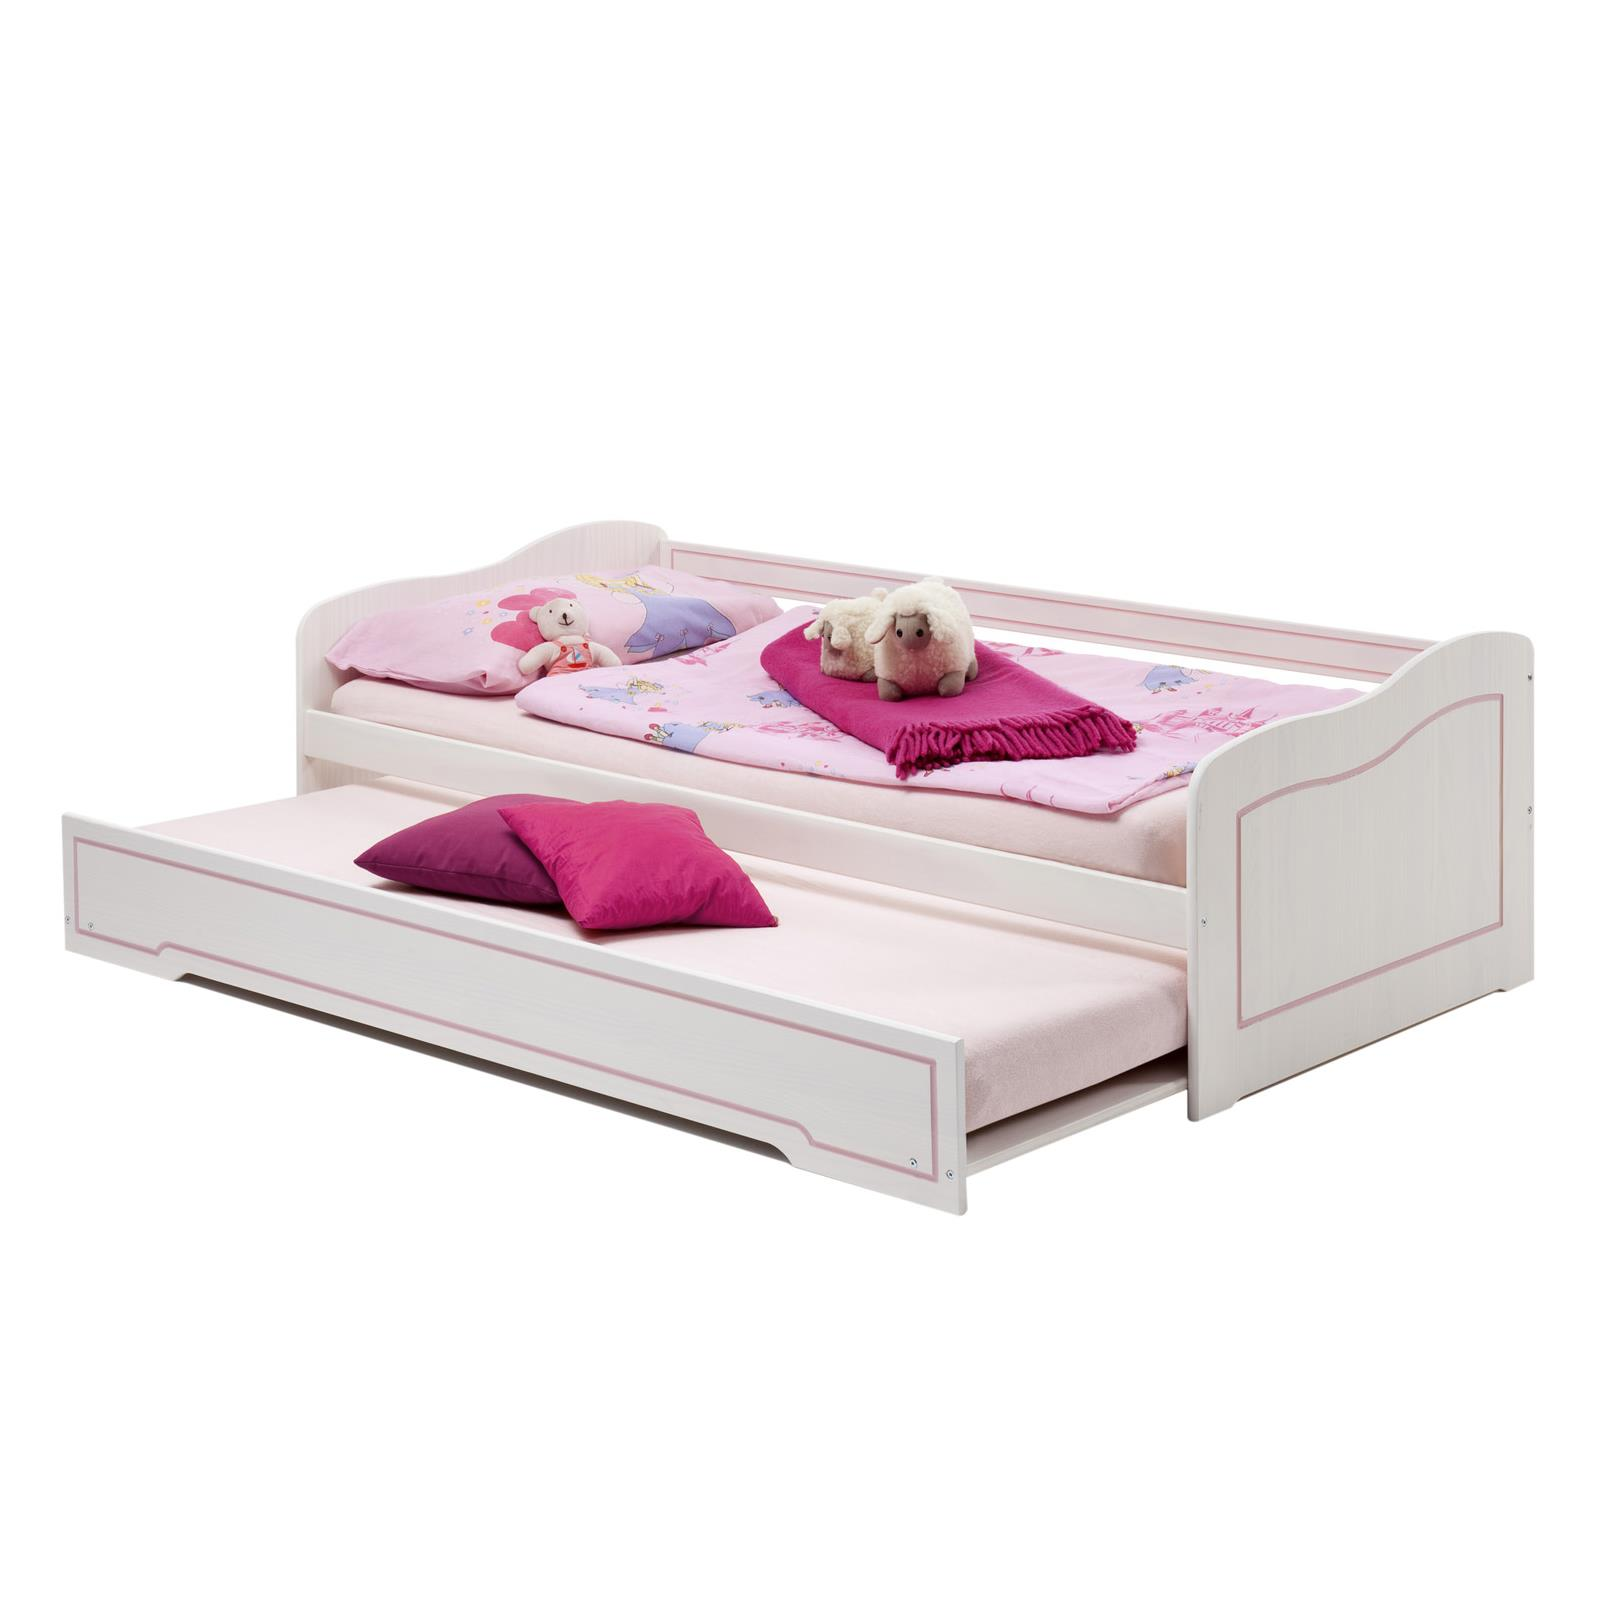 lit gigogne en pin stella 90 x 200 cm lasur blanc rose mobil meubles. Black Bedroom Furniture Sets. Home Design Ideas